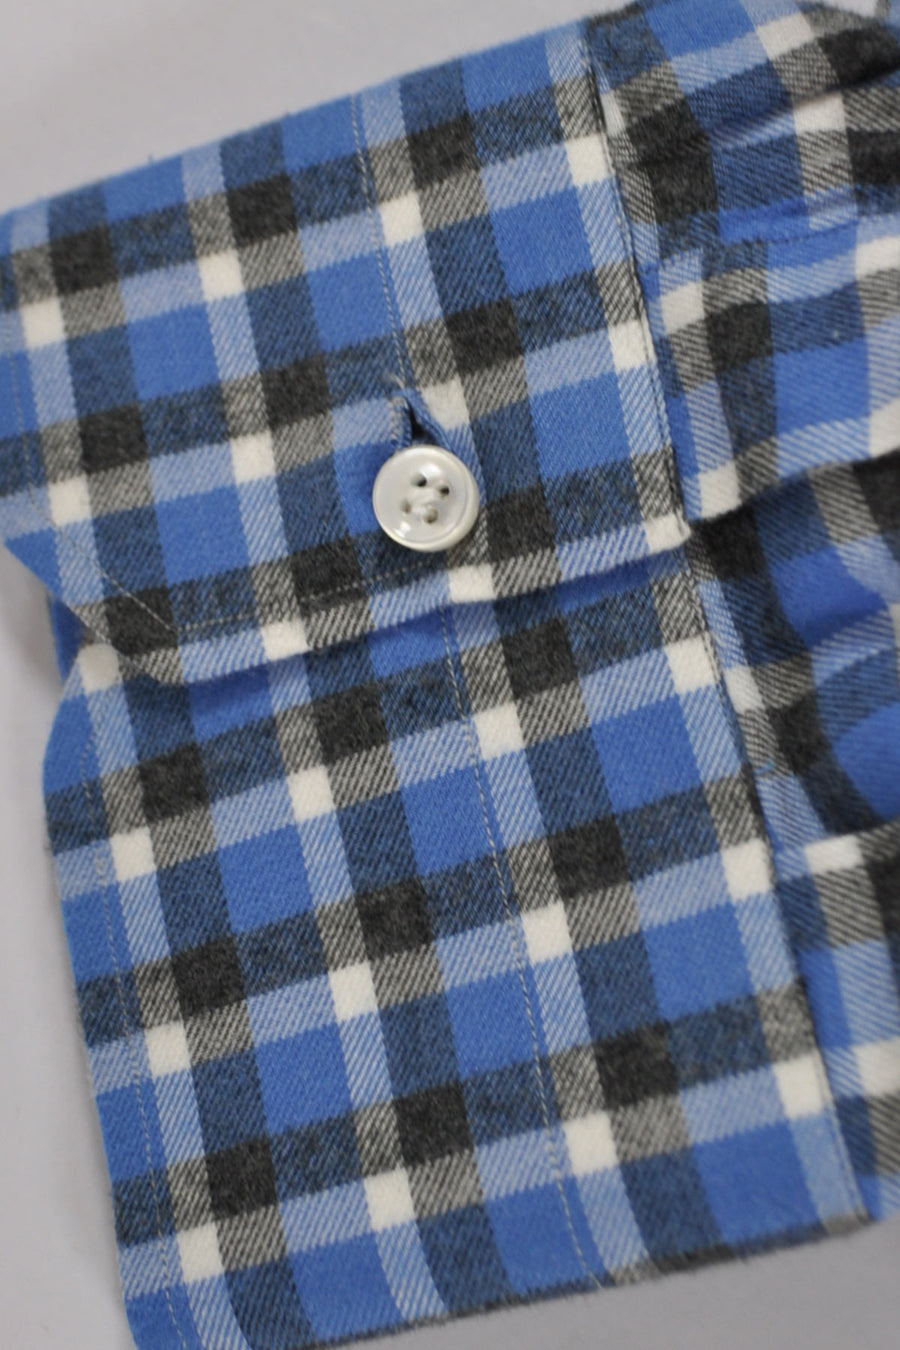 Mattabisch Blue Gray Plaid Flannel Cotton 45 - 18